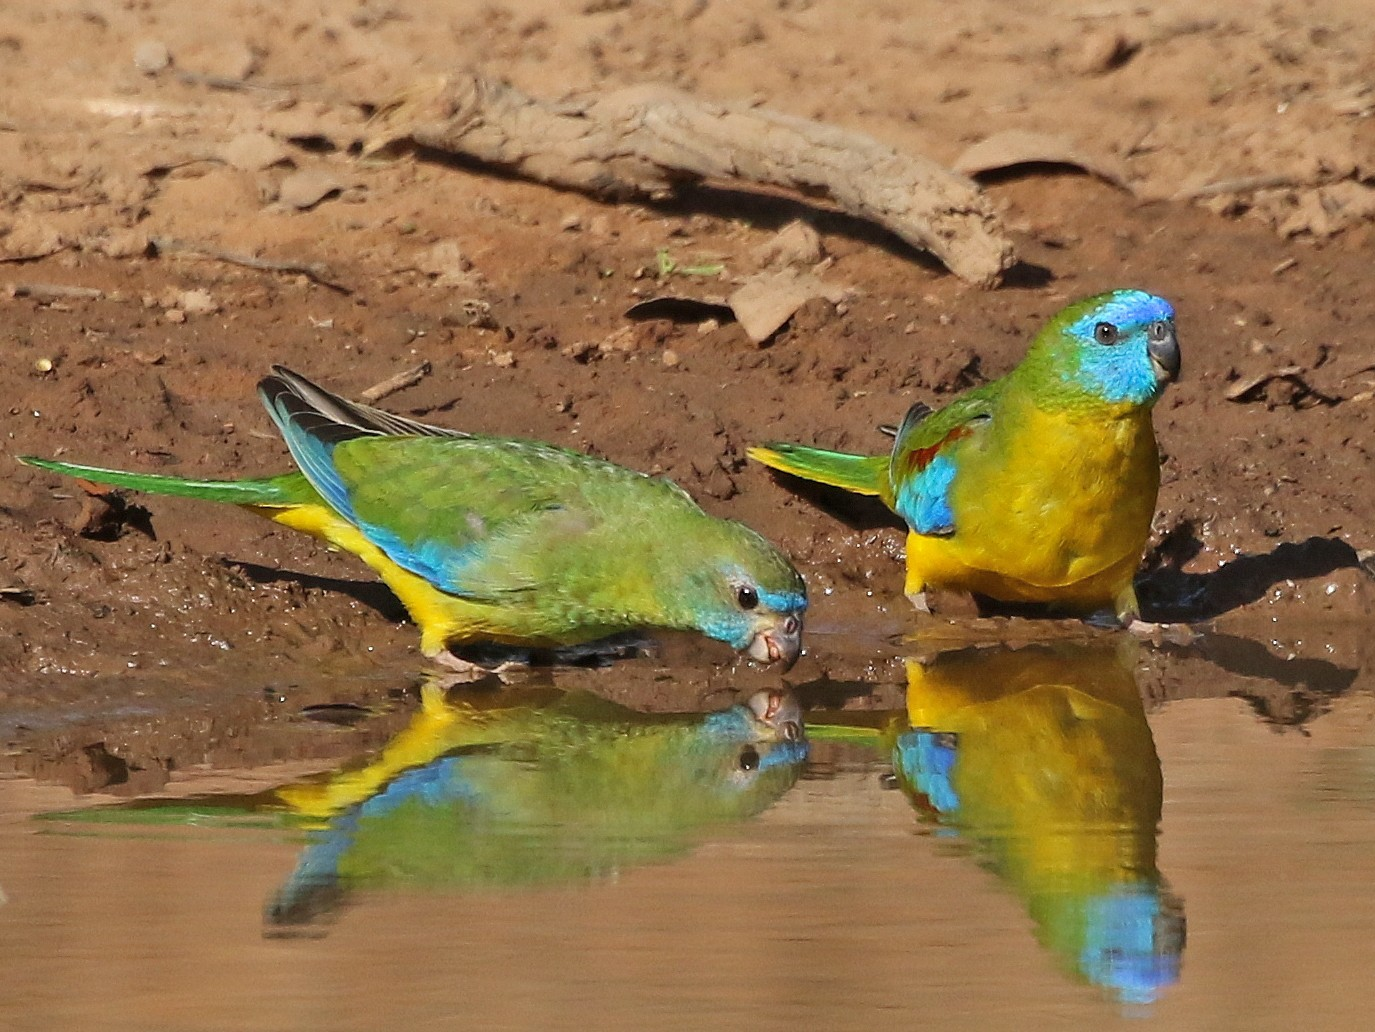 Turquoise Parrot - David Ongley